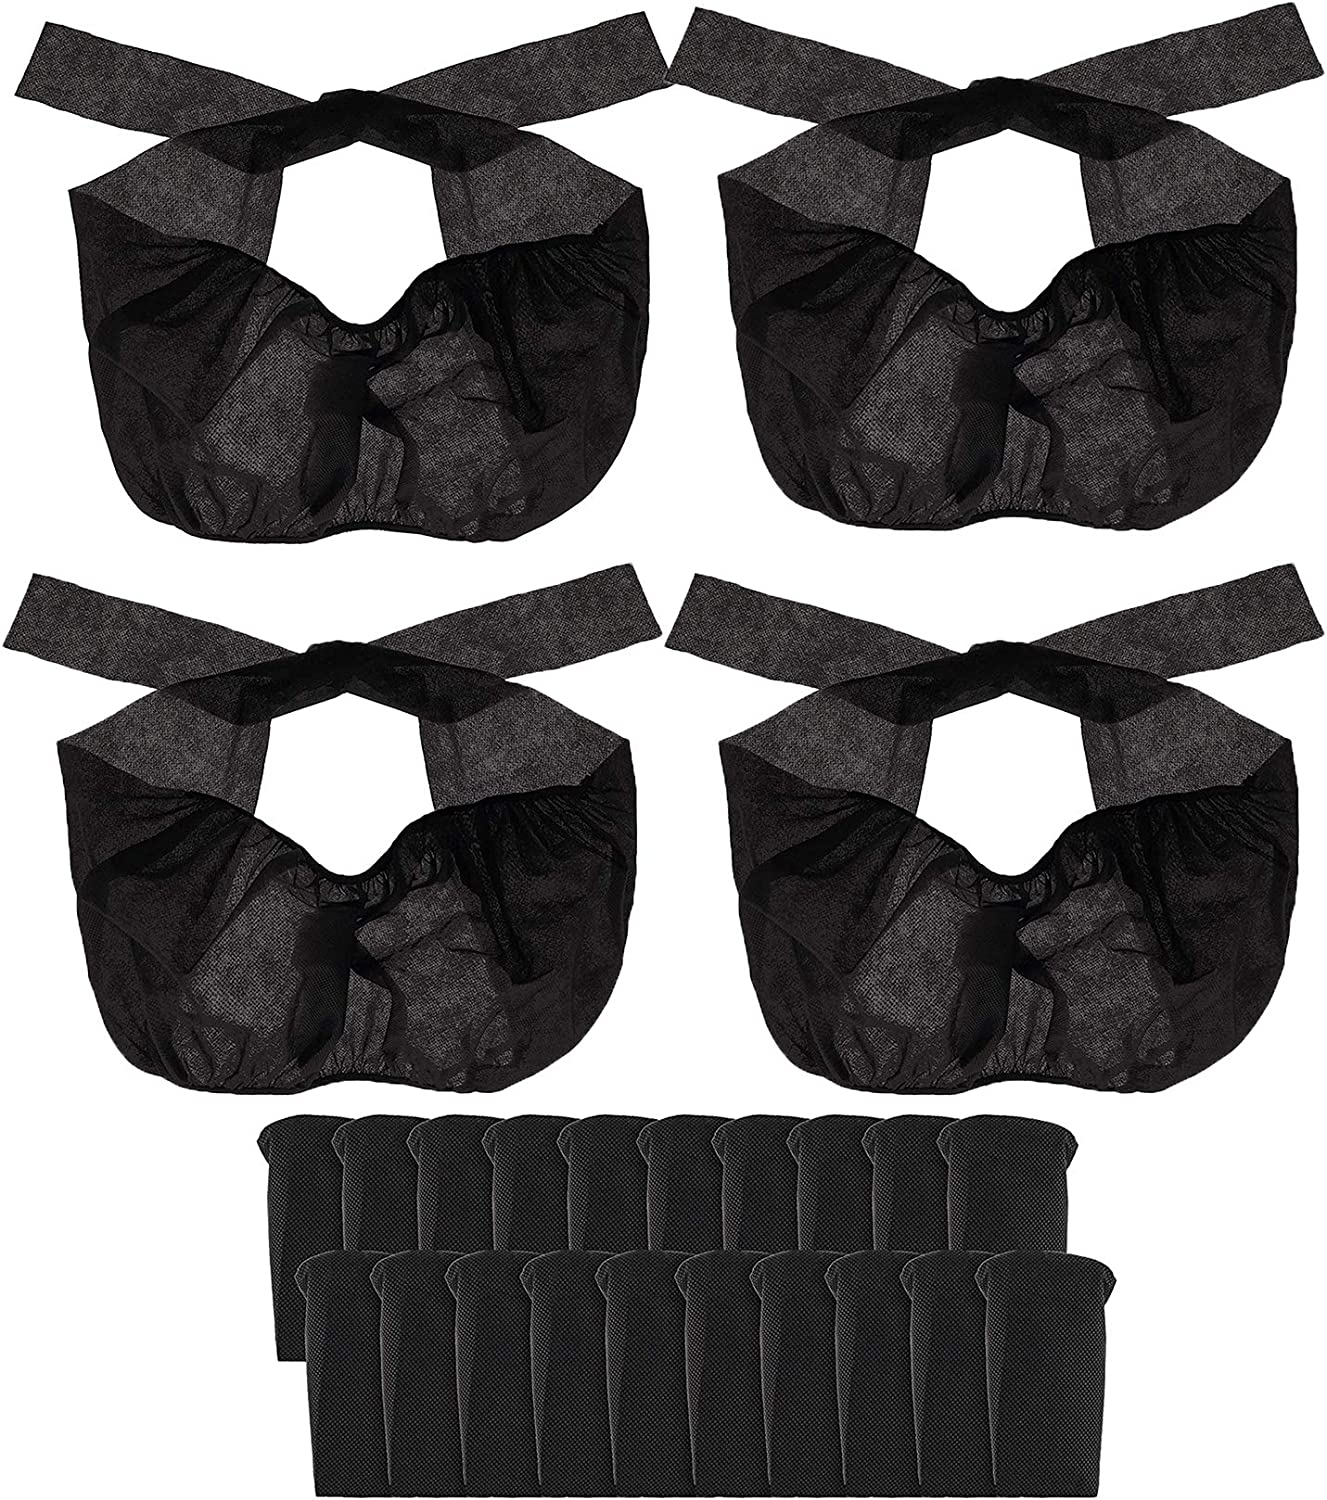 YIYIBO 50-100 Pack Womens Bra Vacation Gorgeous Disposable Sp Portland Mall